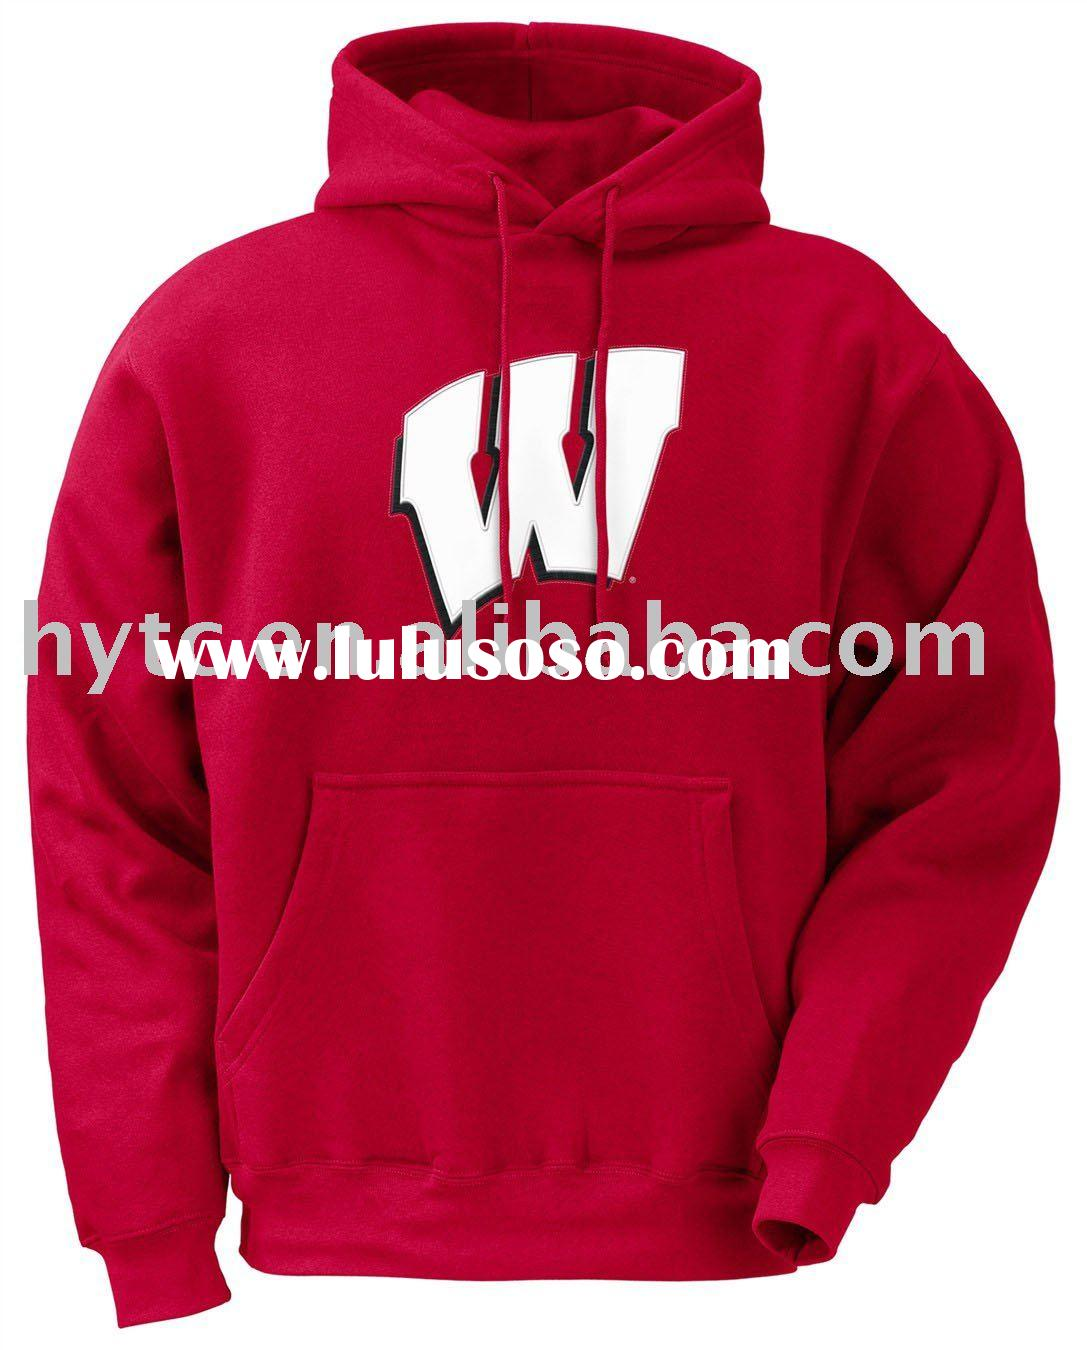 Promotional Hooded Sweatshirt